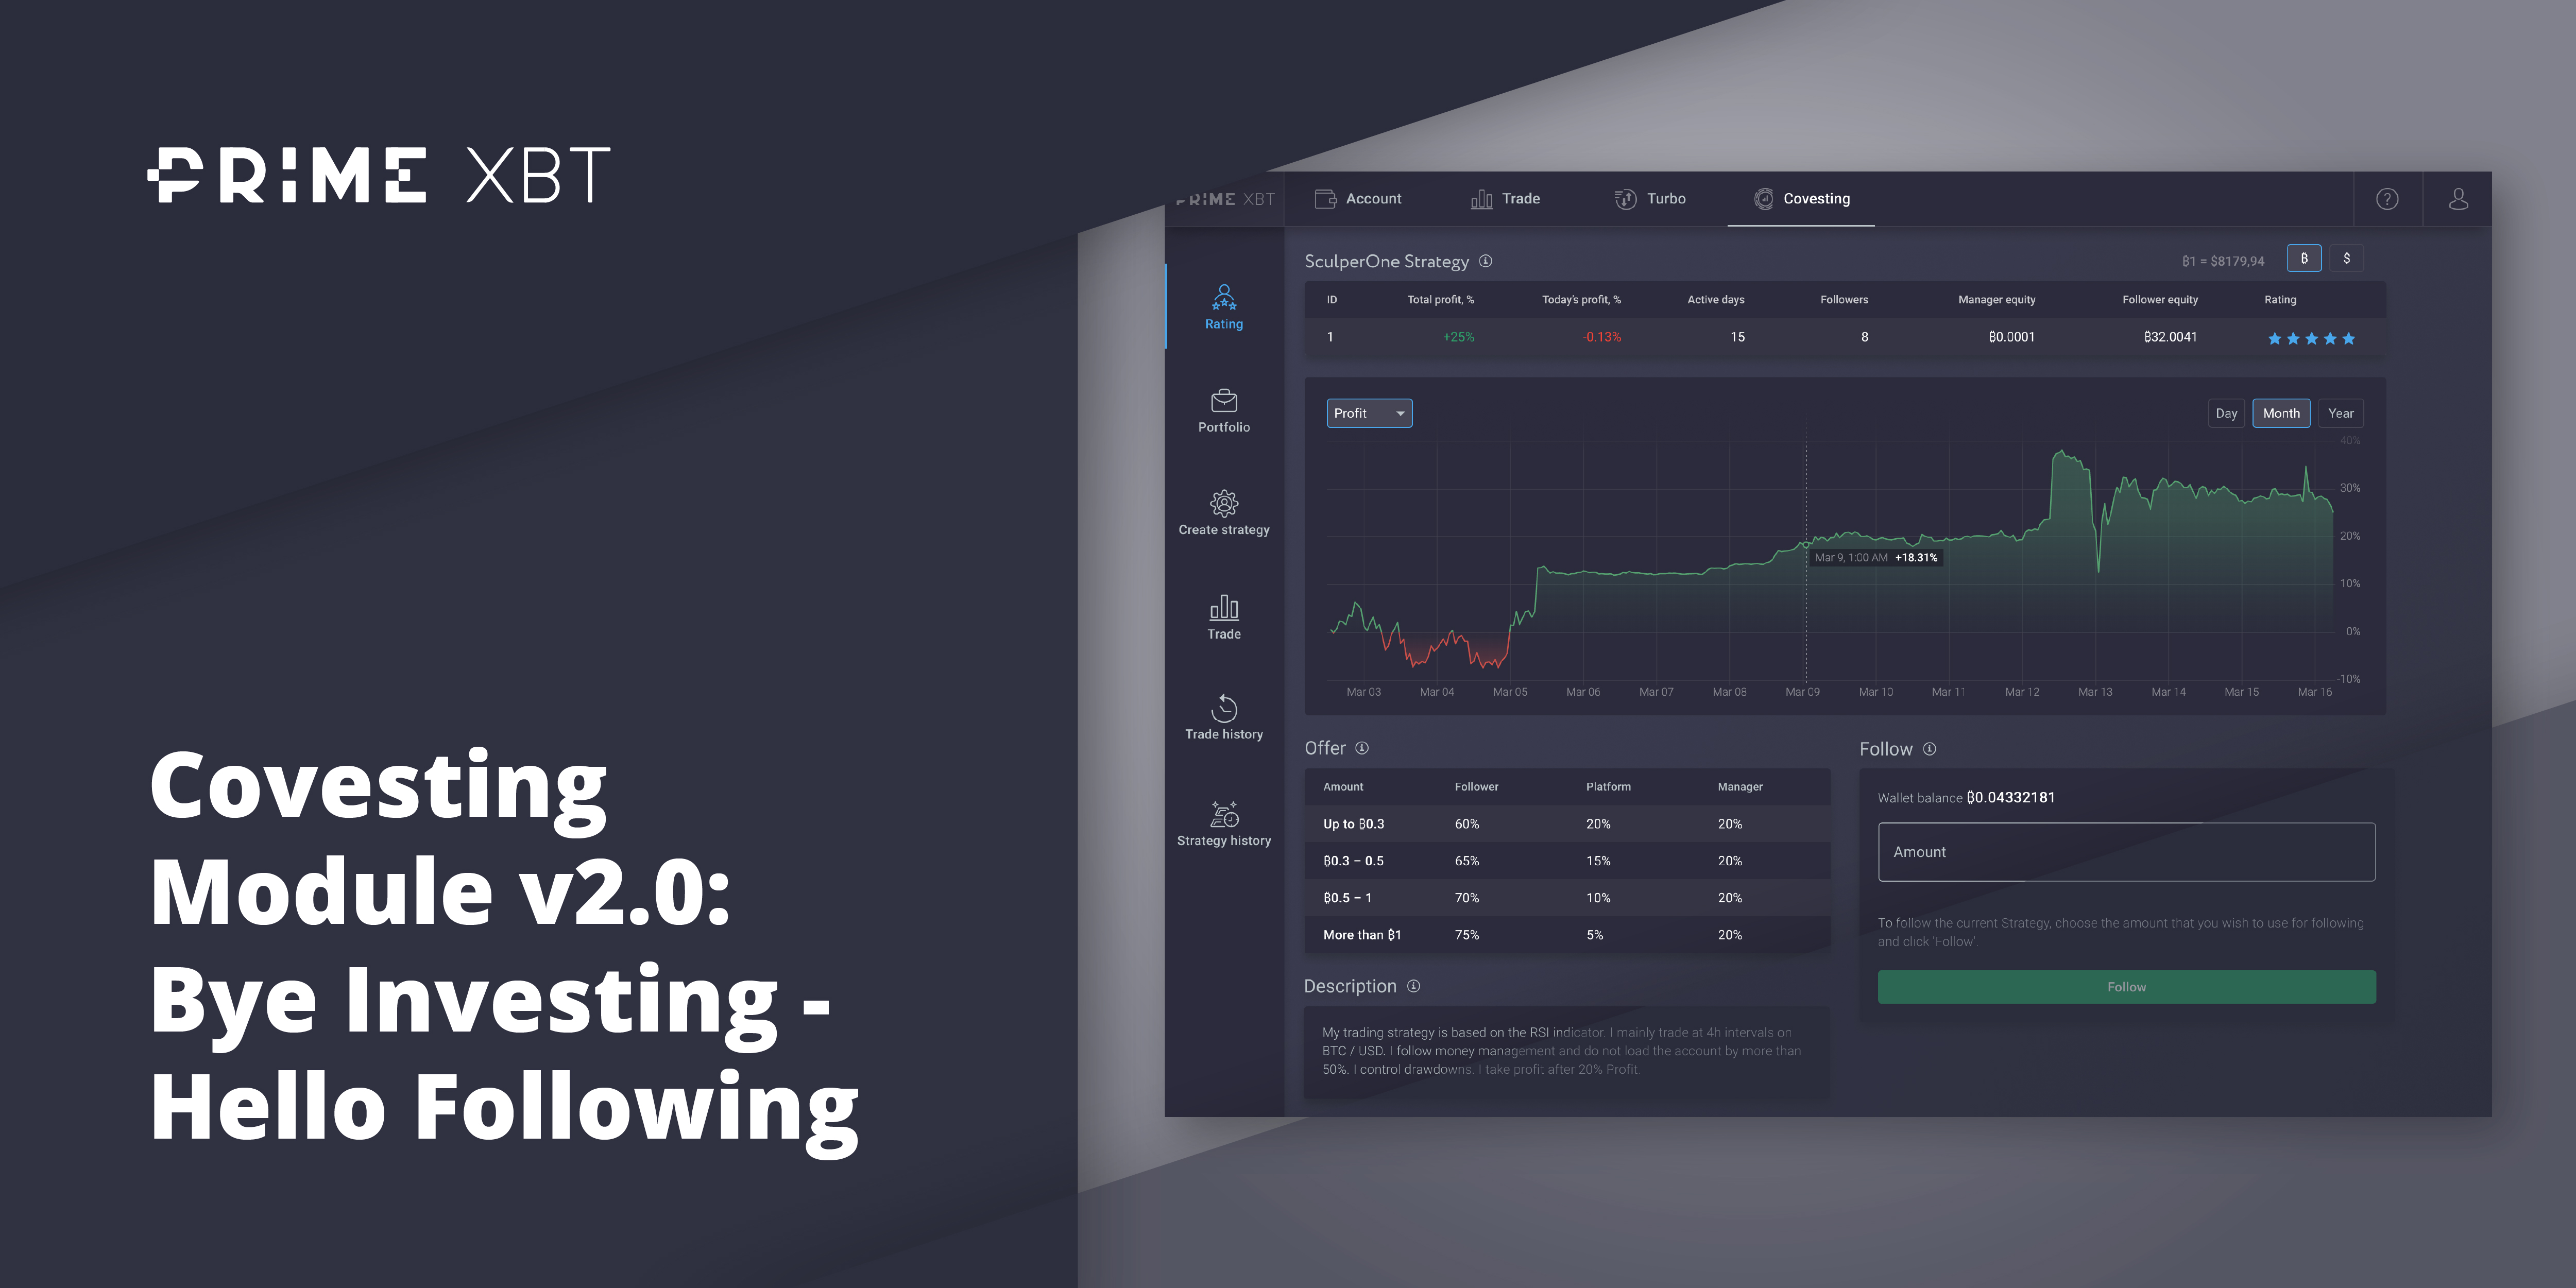 Covesting Module v2.0: Bye Investing - Hello Following